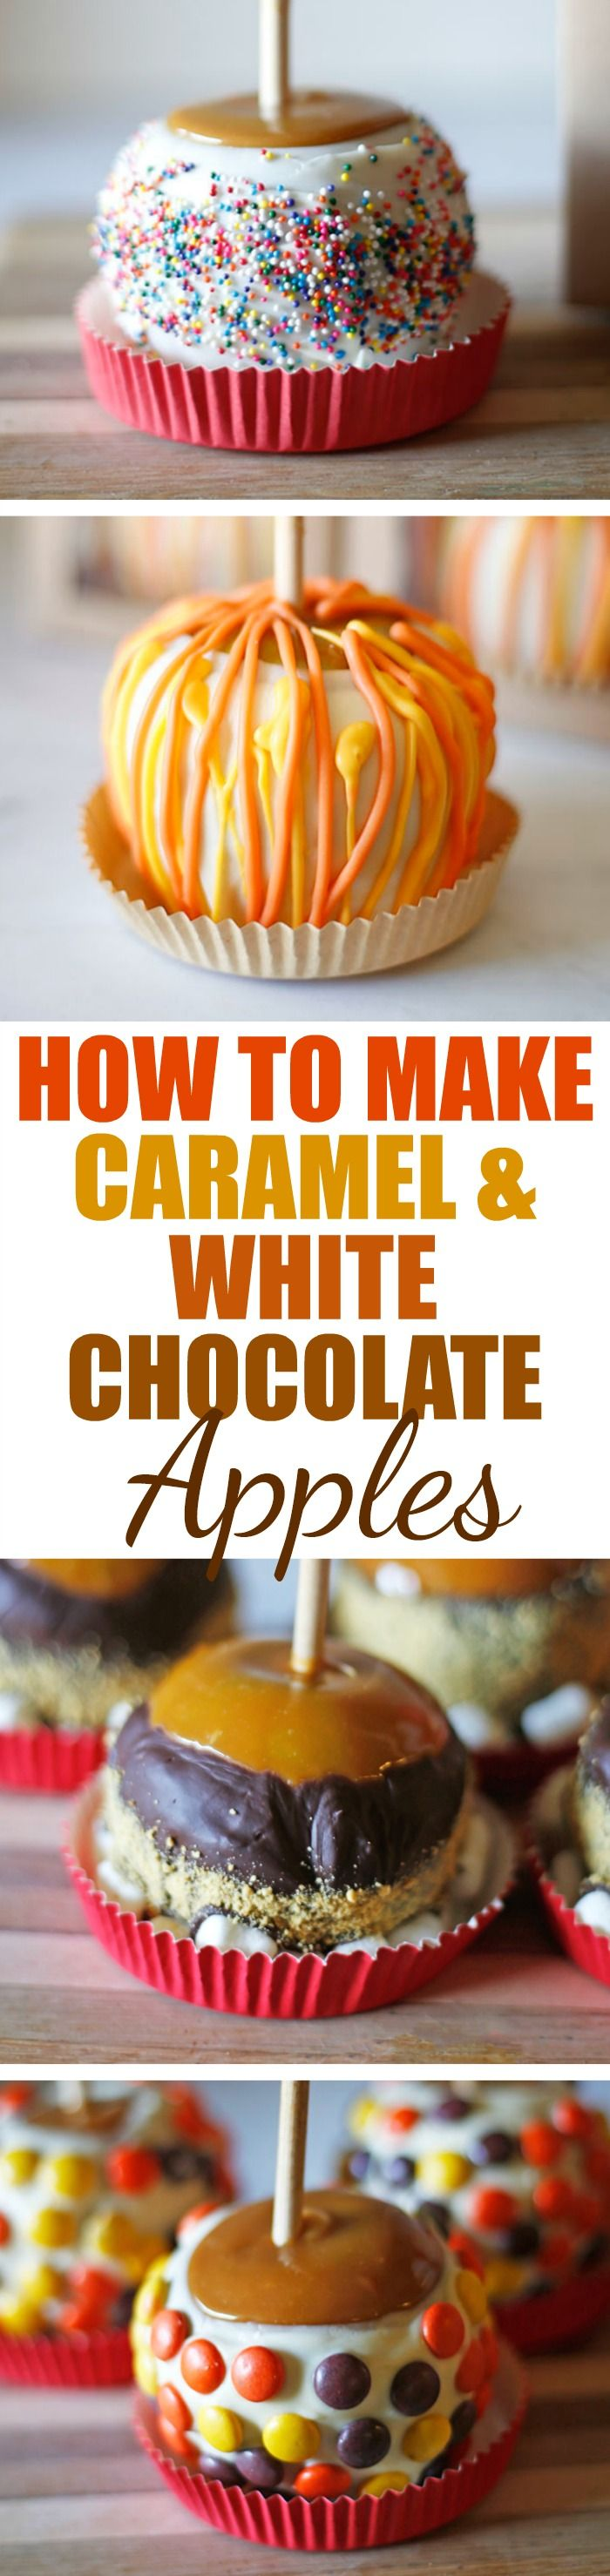 Gourmet Caramel and White Chocolate Apples | They're easier than you think to make at home & so very delish! Click over to Rose Bakes - I'll tell you how! #caramel #caramelapples #apples #recipes